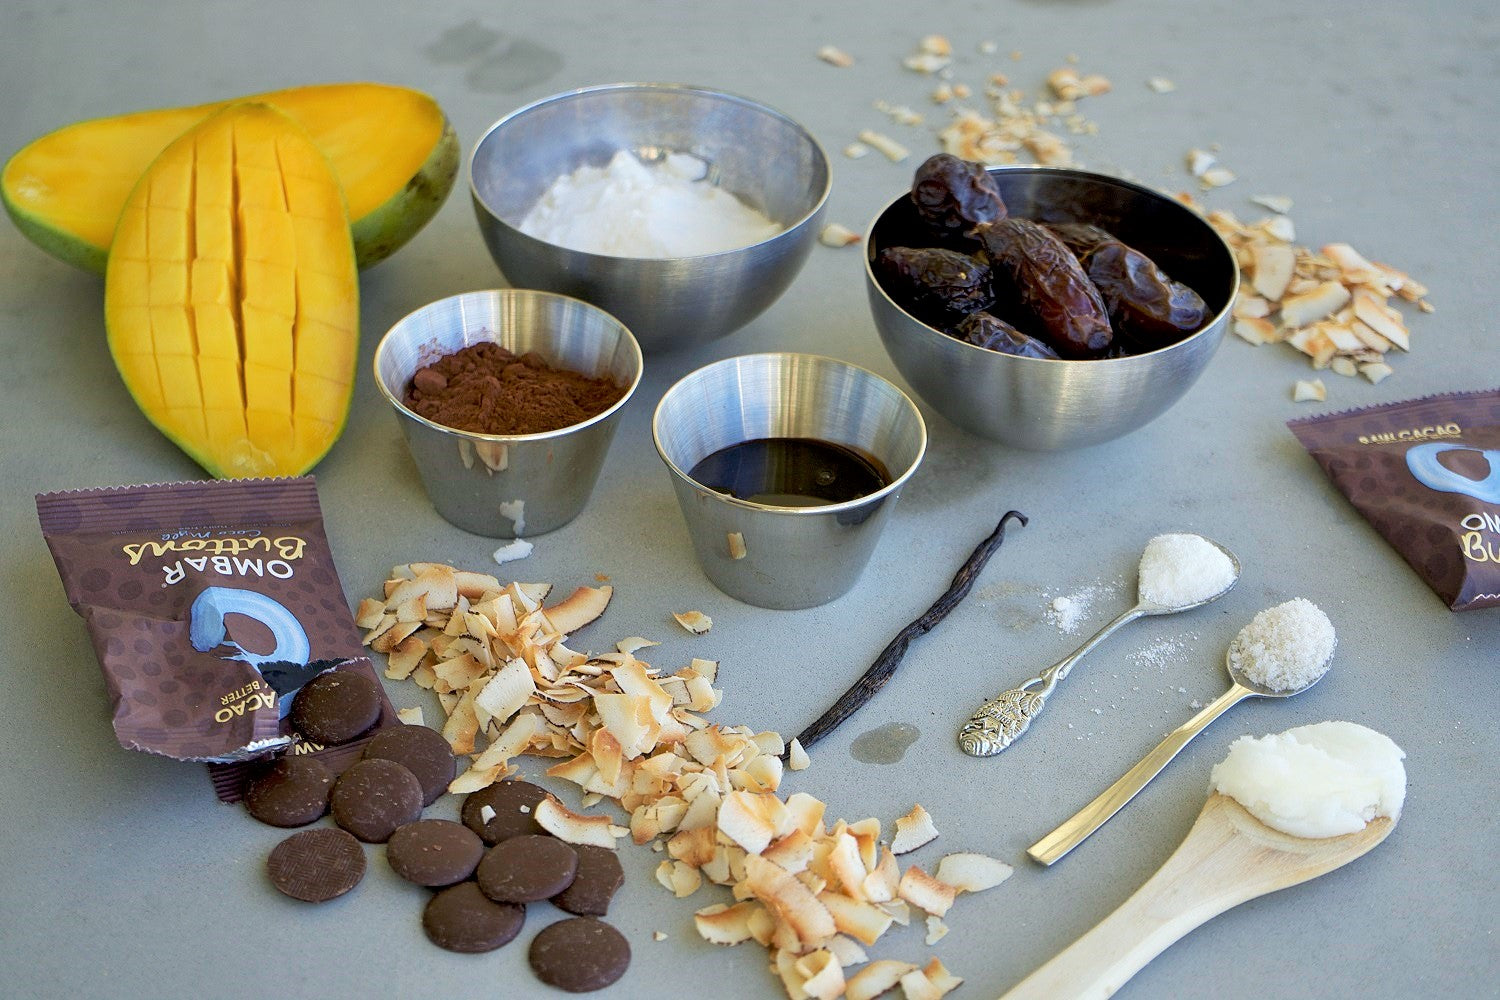 Ingredients for Best Chocolate Cake by Bettina Campolucci Bordi